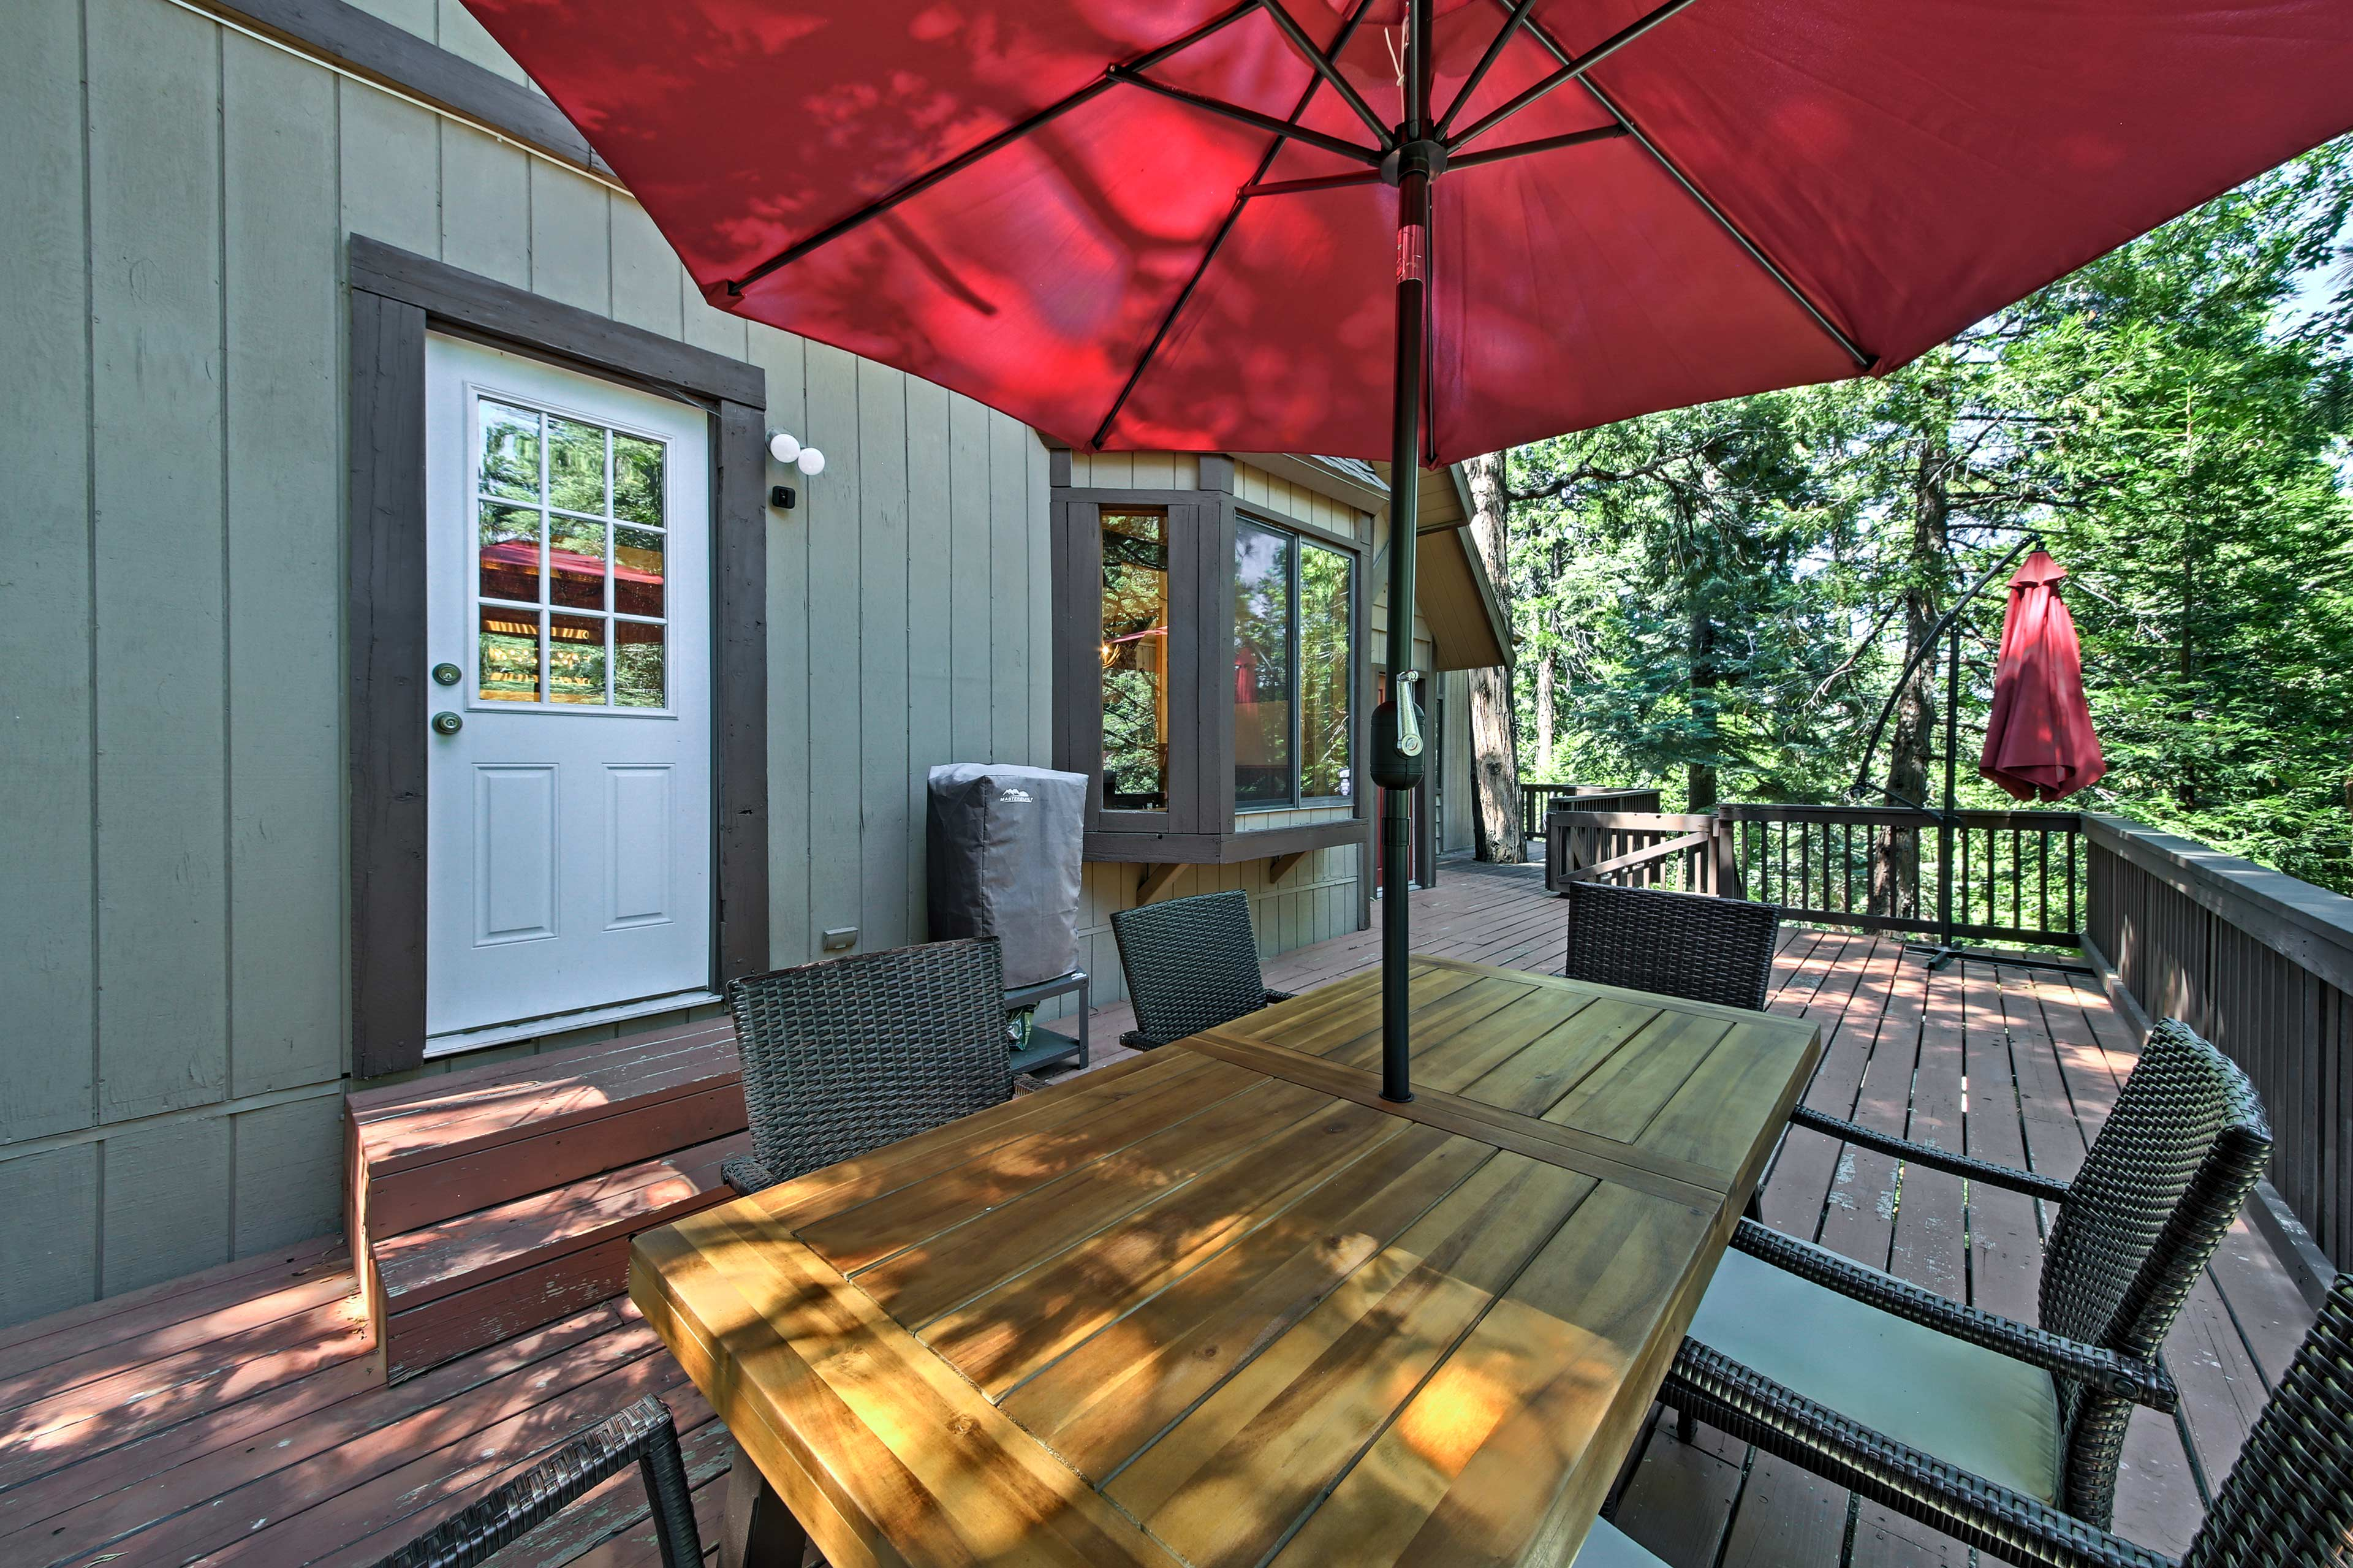 Dine outside at the 6-person table on the deck.